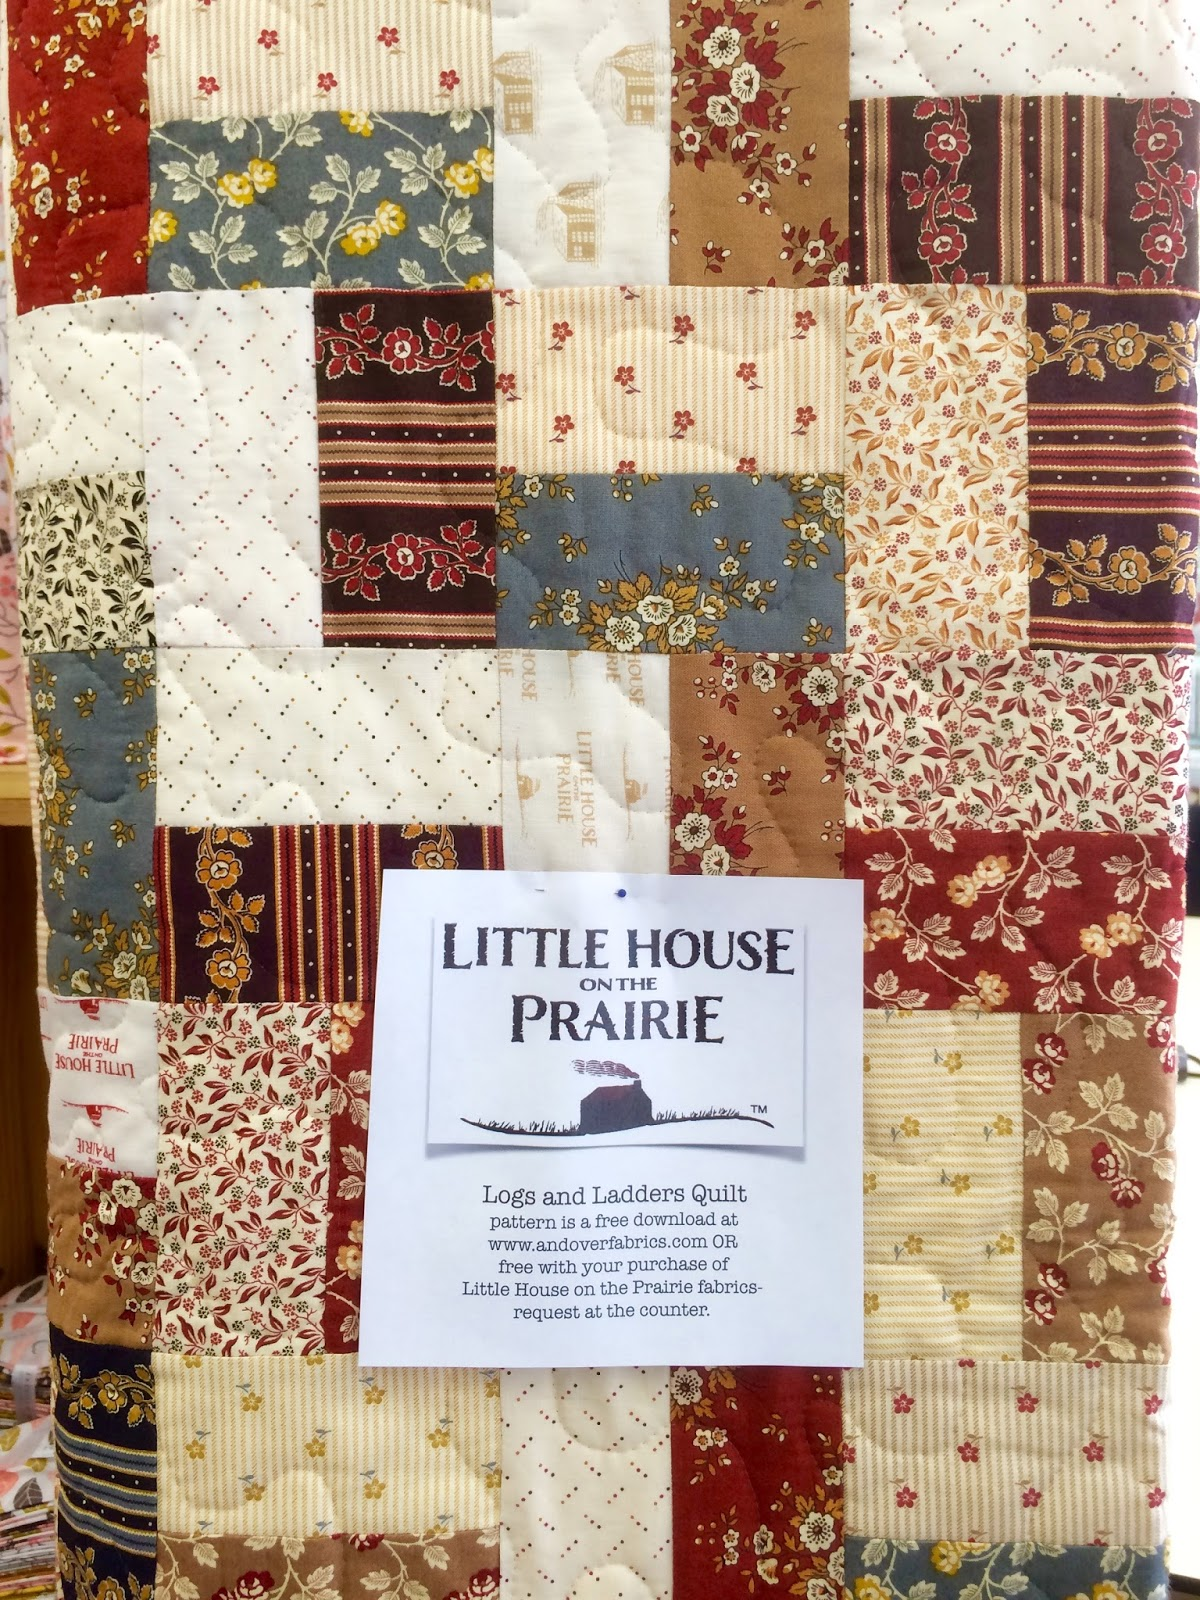 the Bear Blog: Little House on the Prairie from Andover Fabrics : prairie quilts - Adamdwight.com